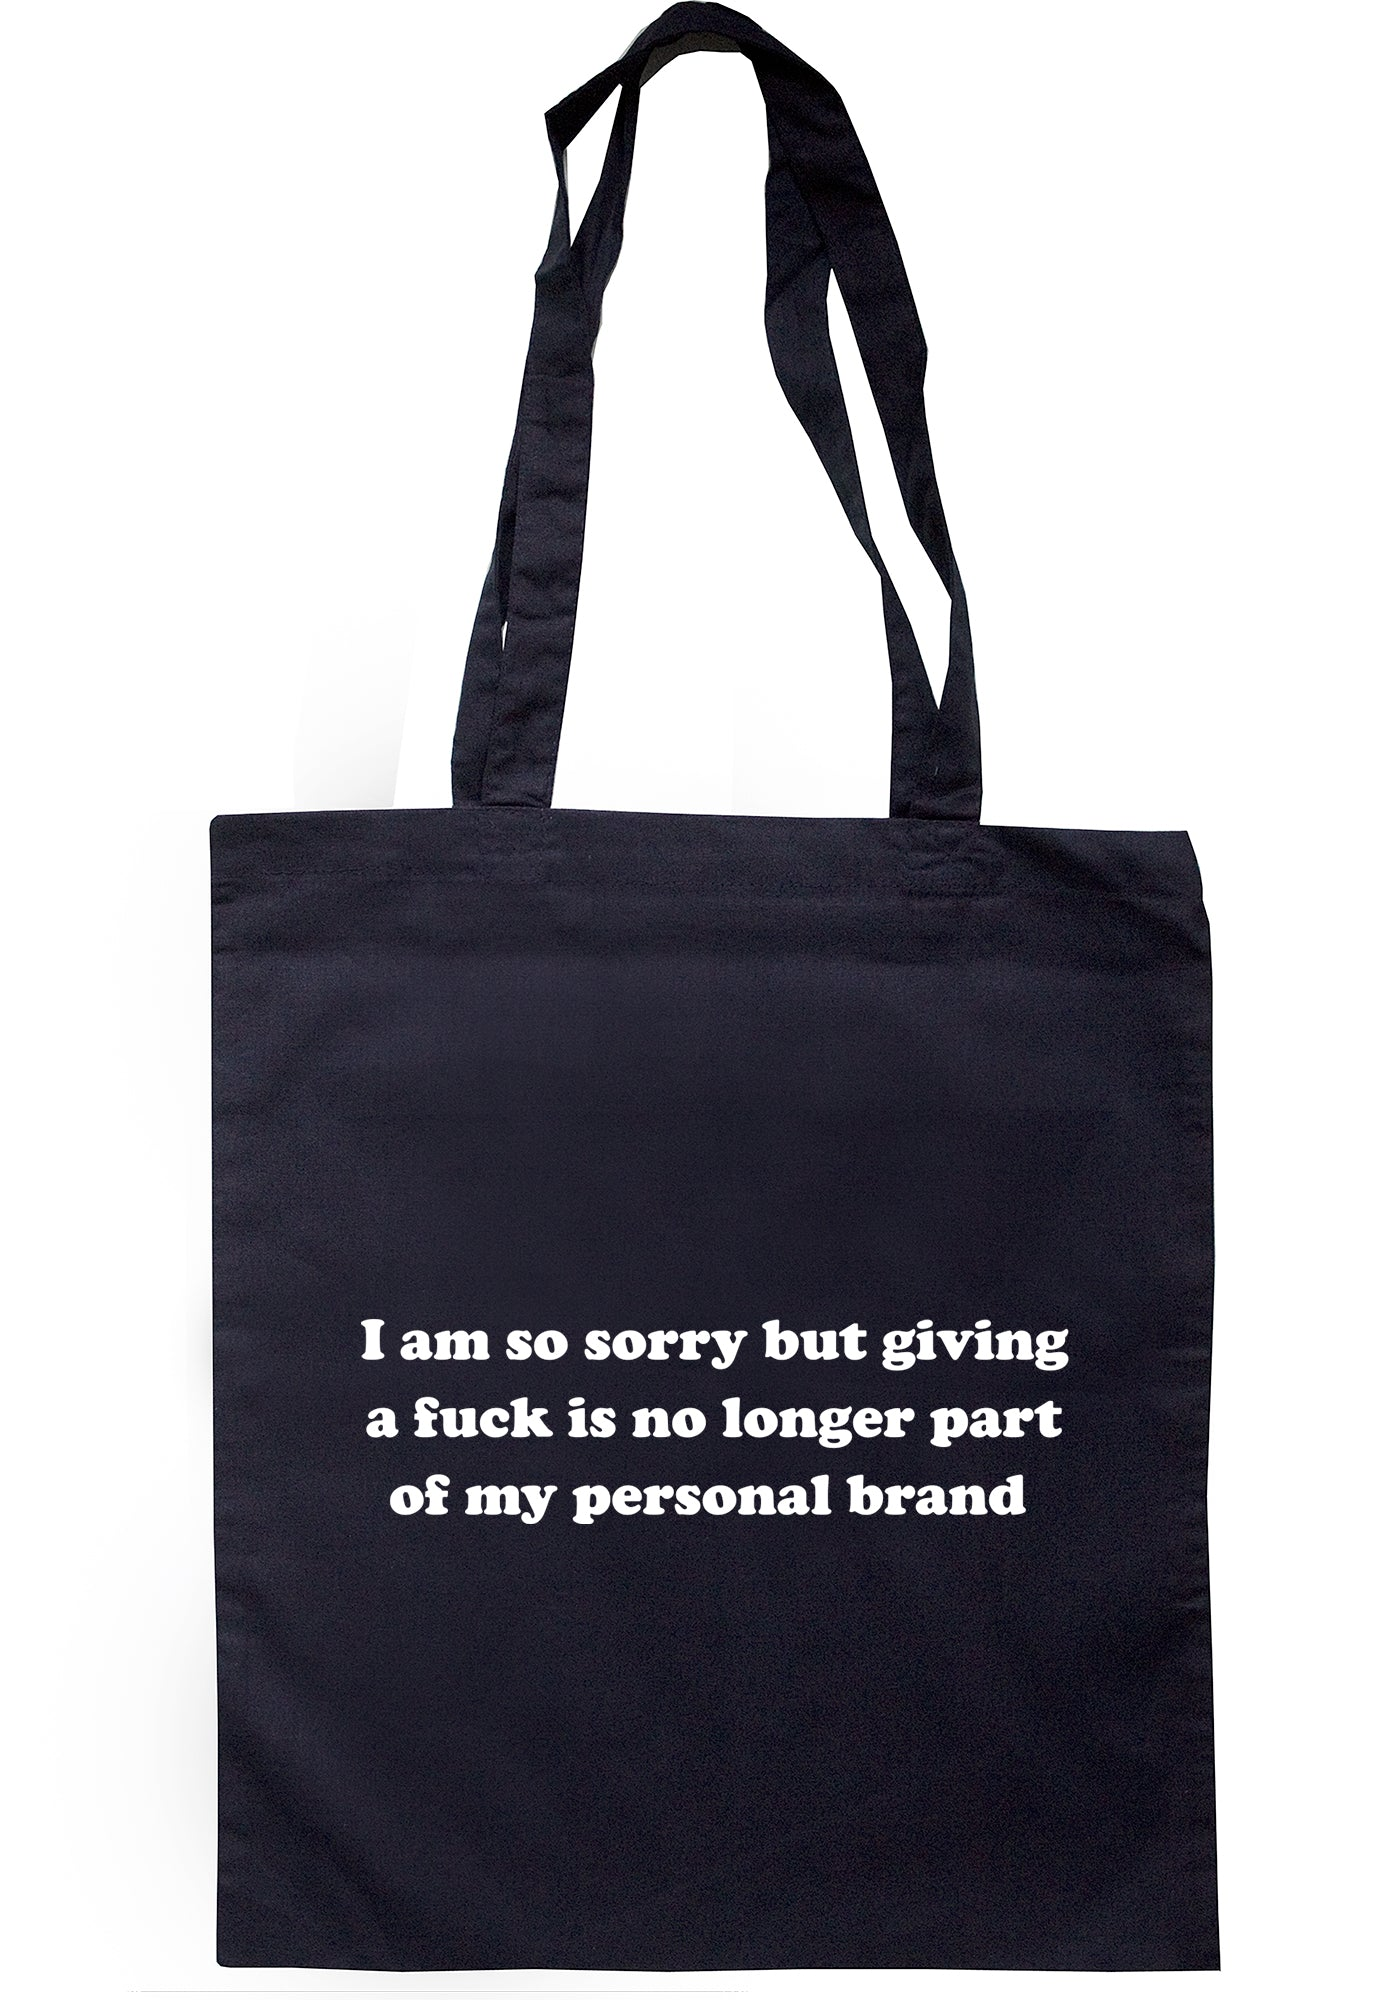 Giving A Fuck Is No Longer Part Of My Personal Brand Tote Bag S1111 - Illustrated Identity Ltd.